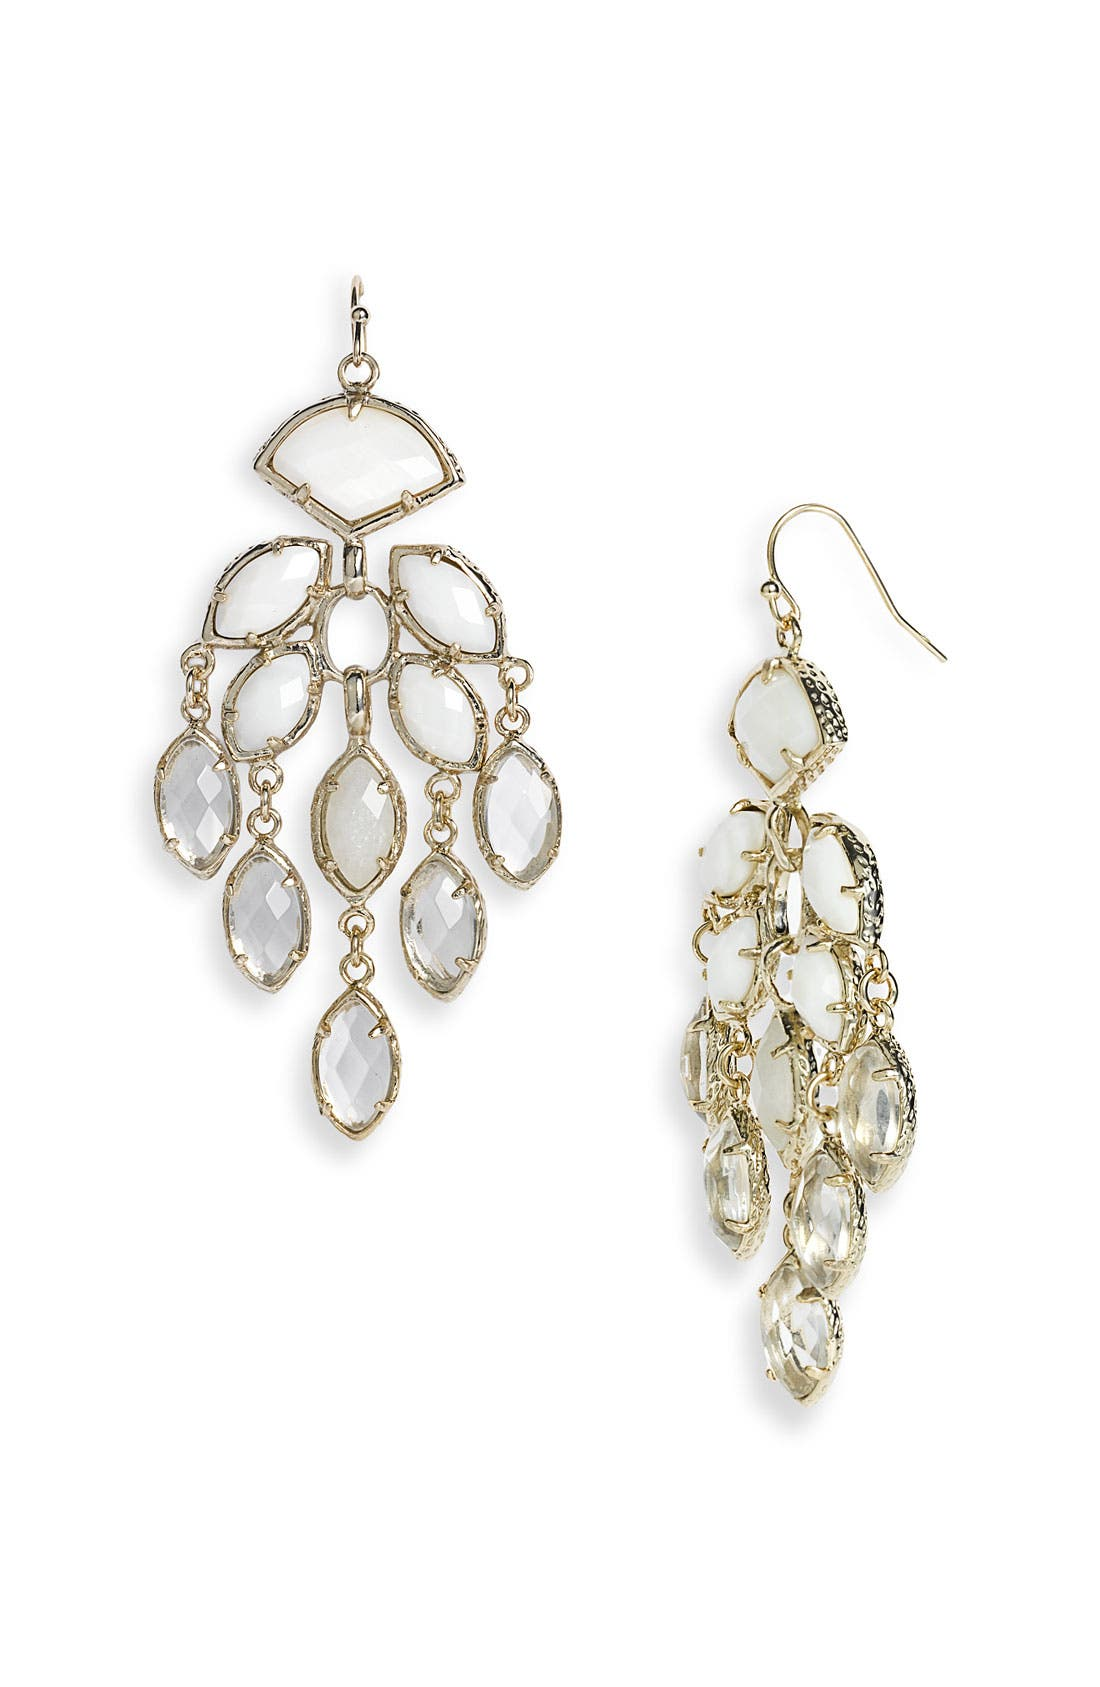 Alternate Image 1 Selected - Kendra Scott 'Gwen' Large Chandelier Earrings